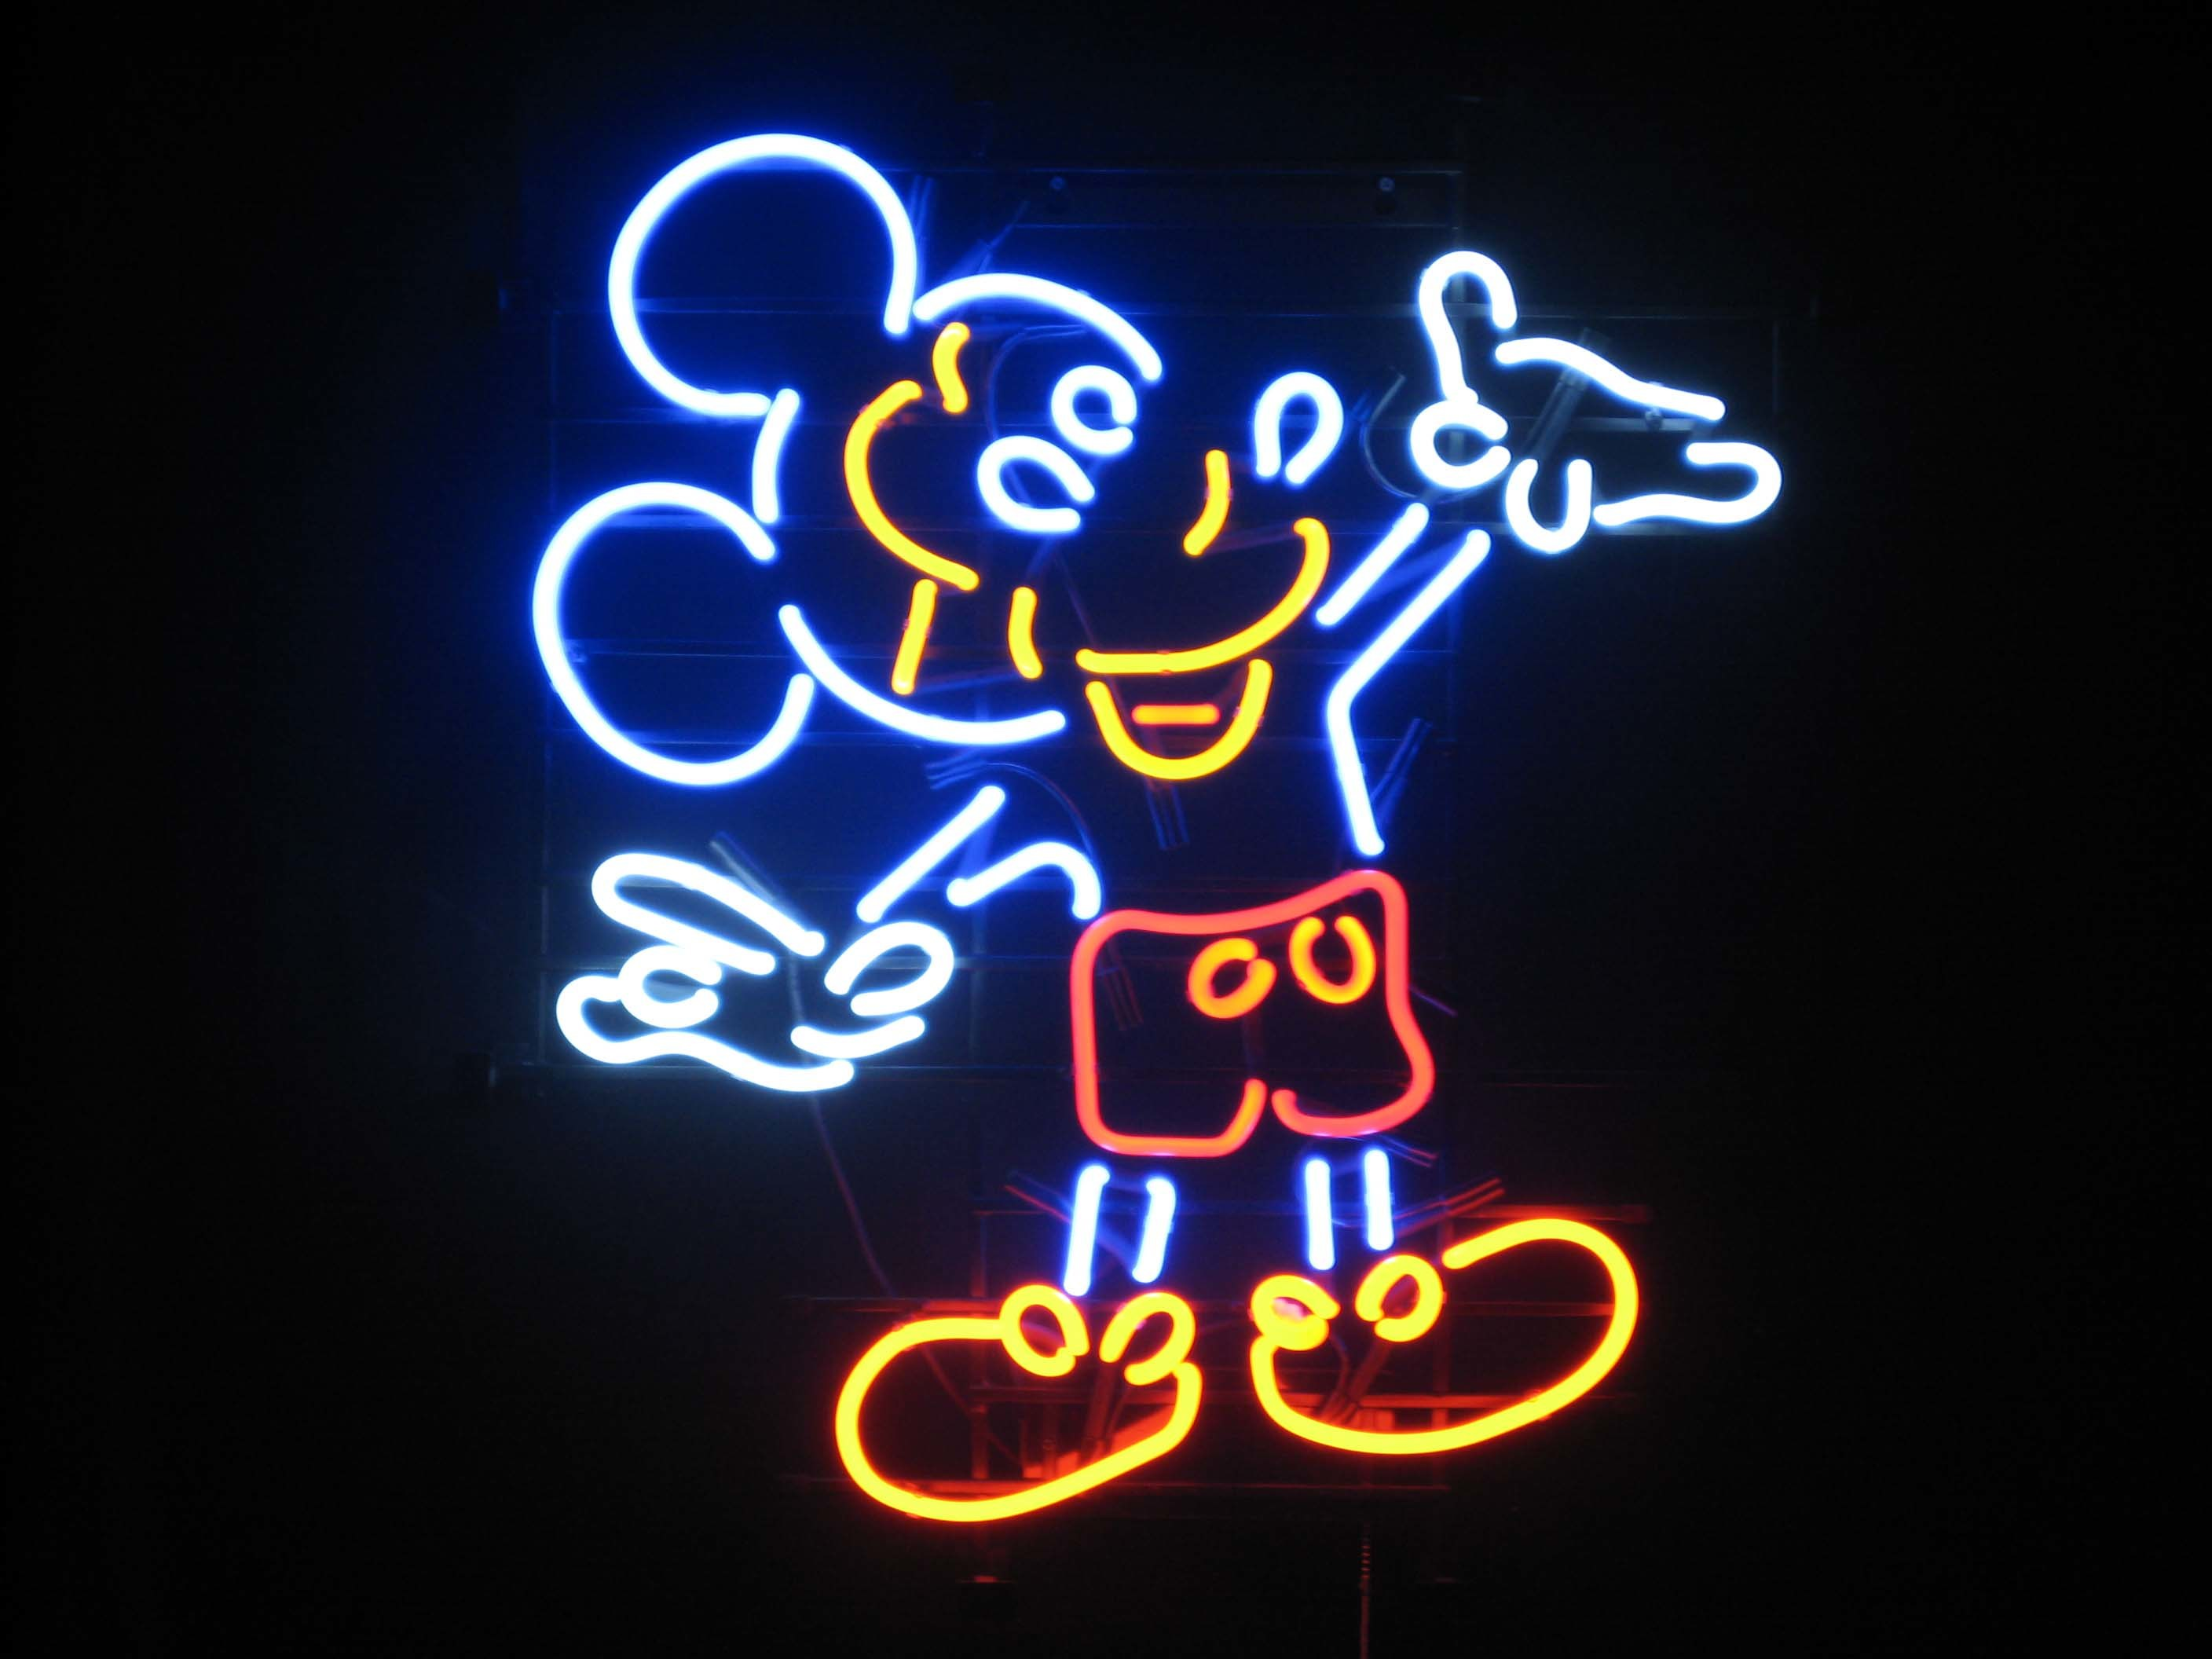 China Mouse Neon Sign Sdl 057 China Neon Sign Neon Signs